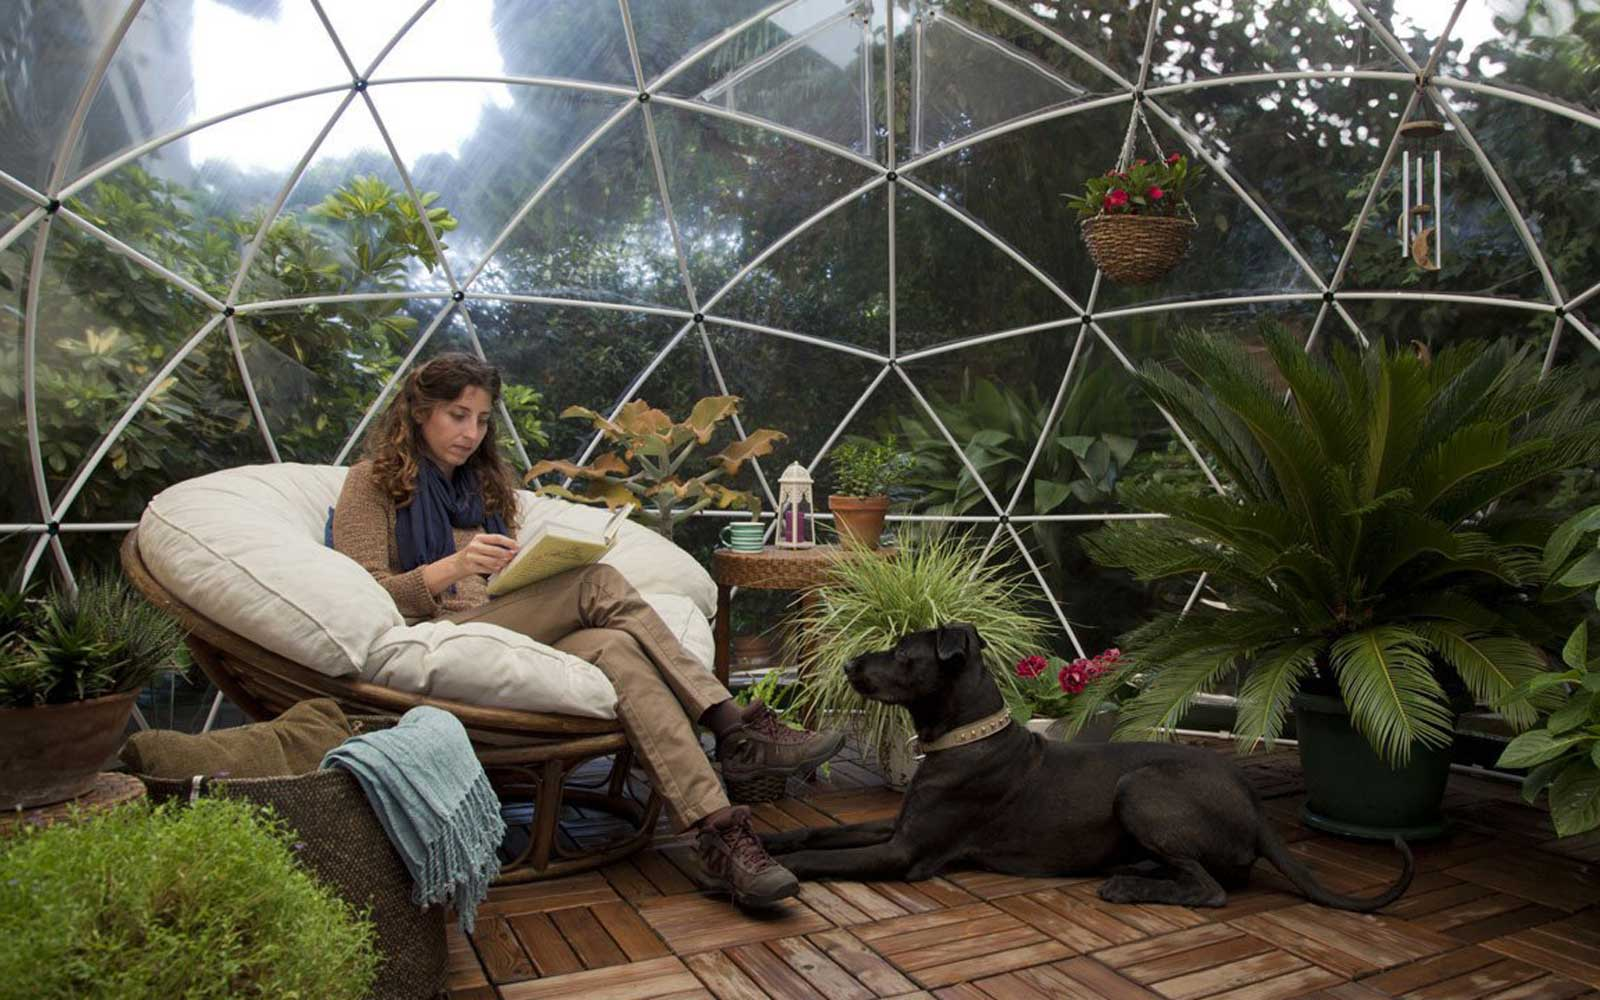 This Stunning Garden Dome Is Perfect for Backyard Glamping